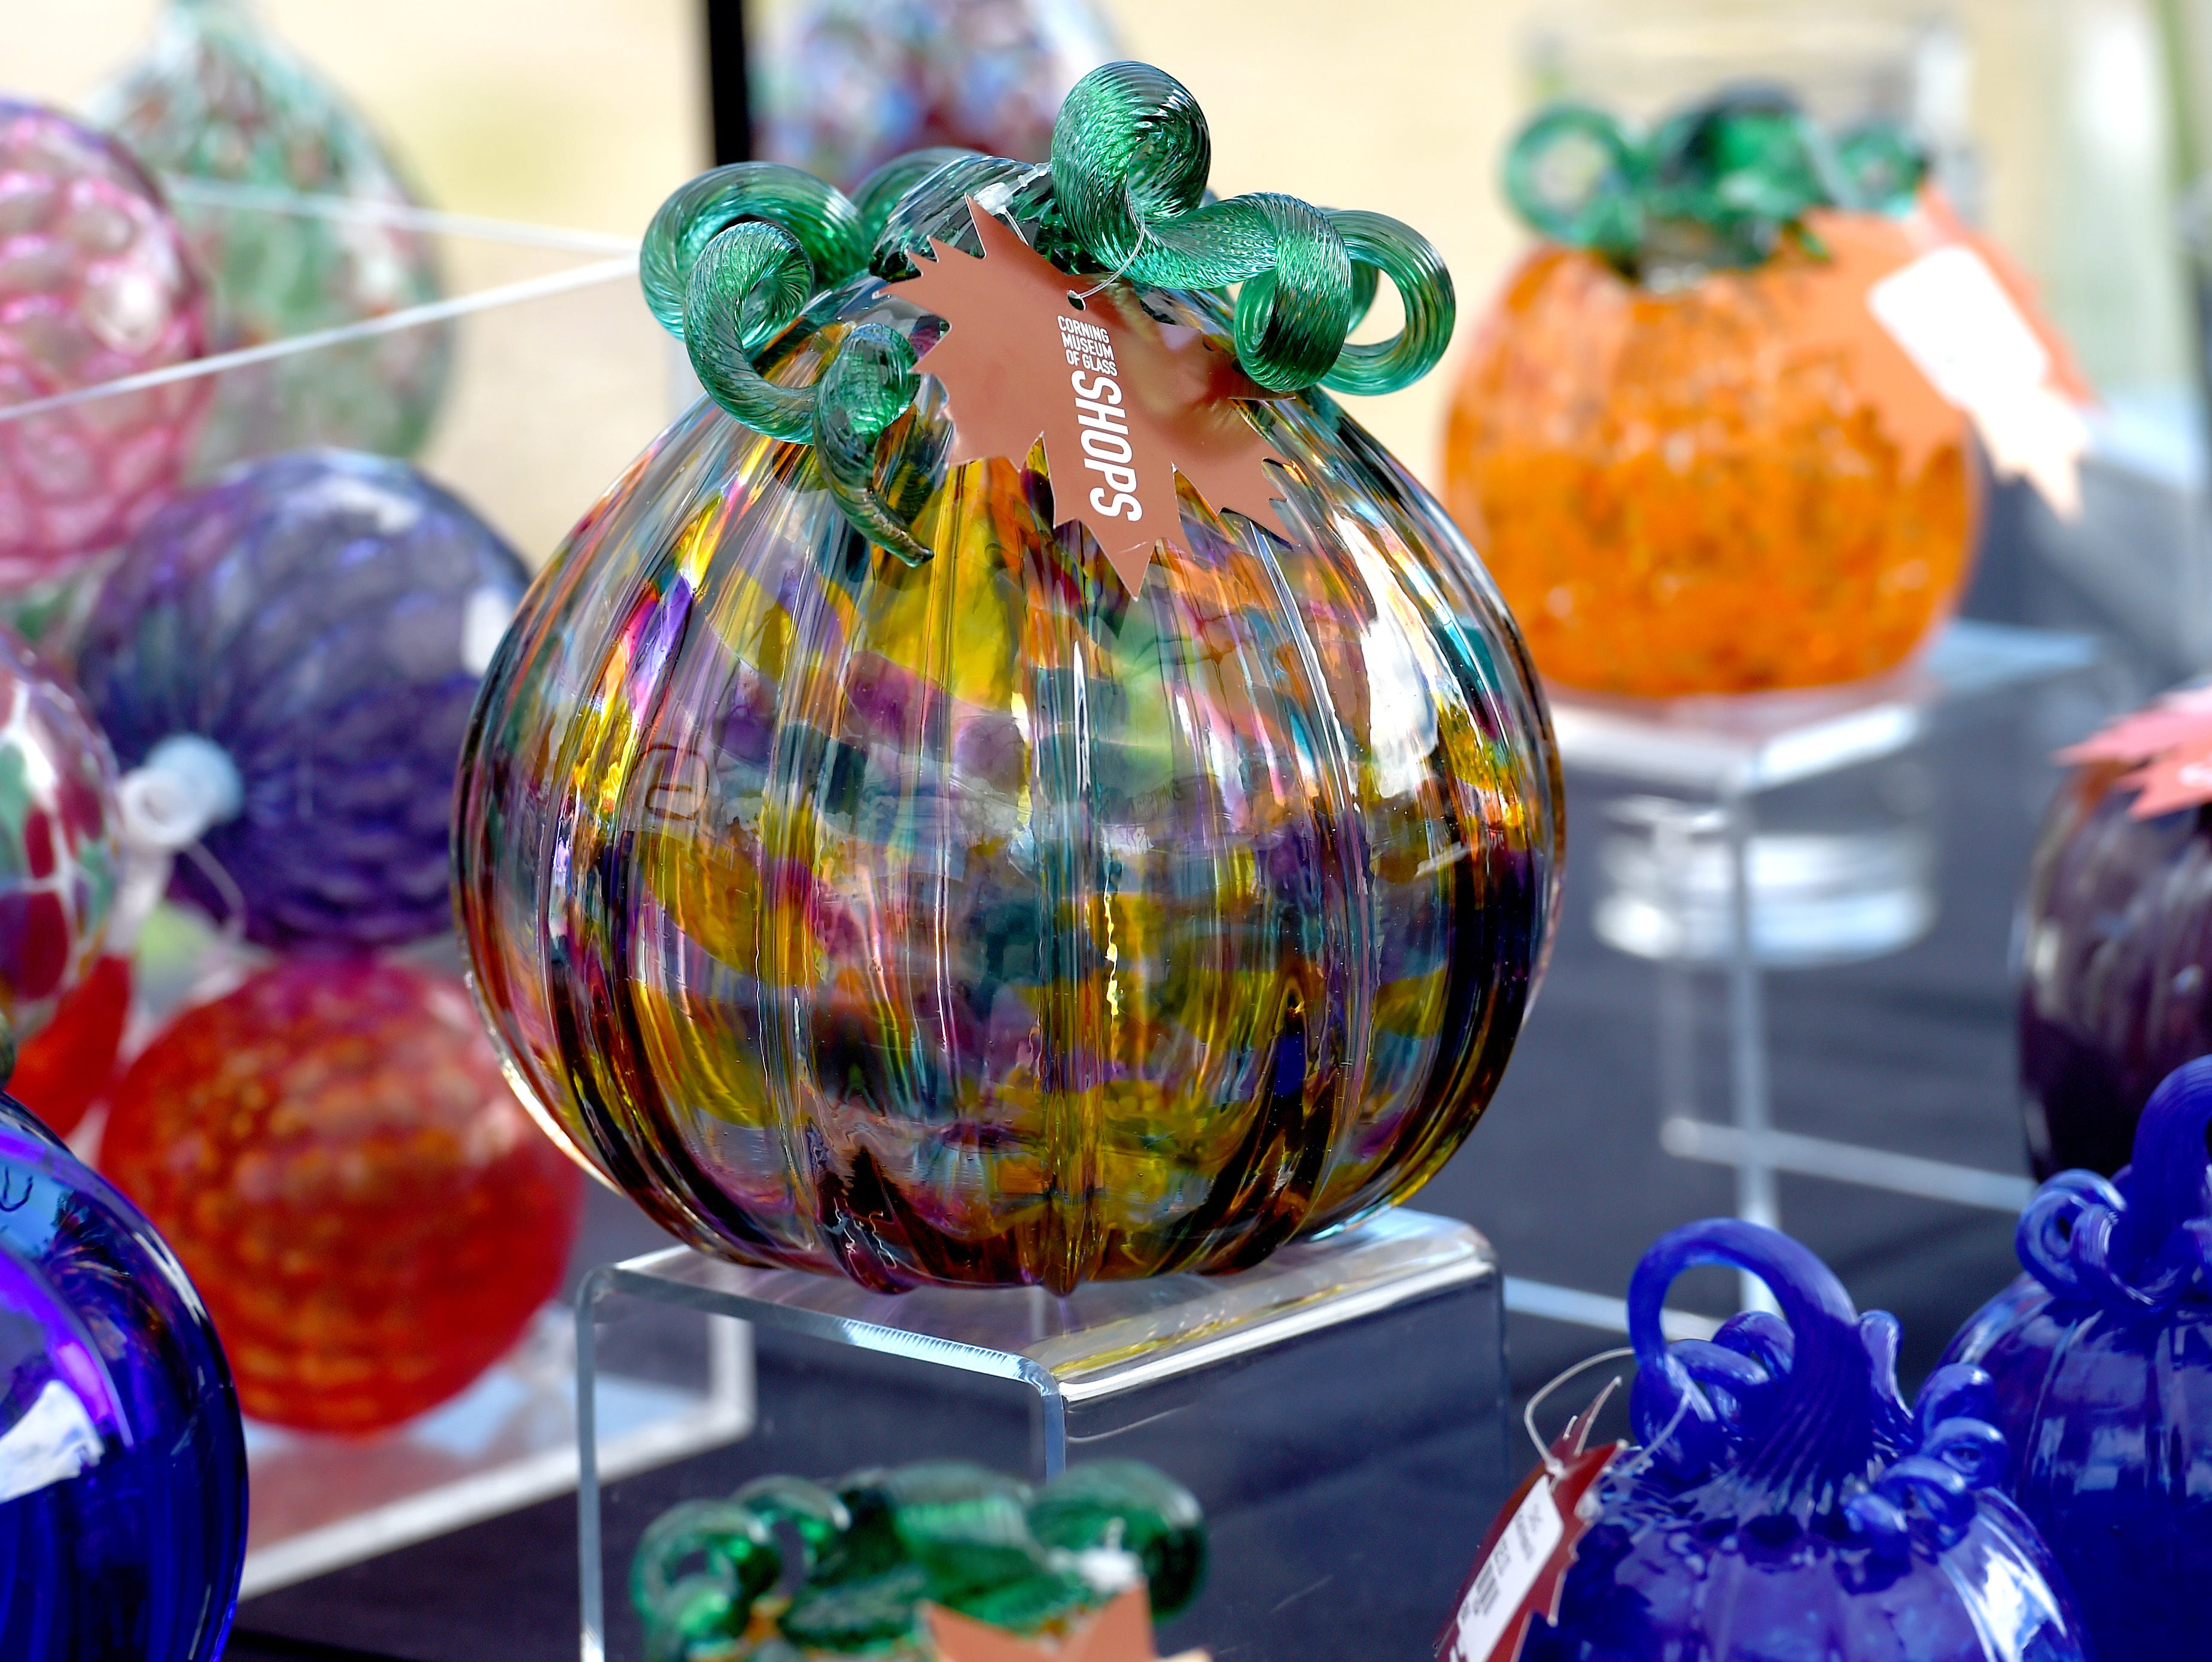 Glass work by the artists traveling with the GlassBarge, a canal boat with patented glass-making equipment. Presented by the Corning Museum of Glass, the GlassBarge is currently docked in Watkins Glen on Seneca Lake and welcomes visitors to glassmaking demonstrations. Friday, September 14, 2018.